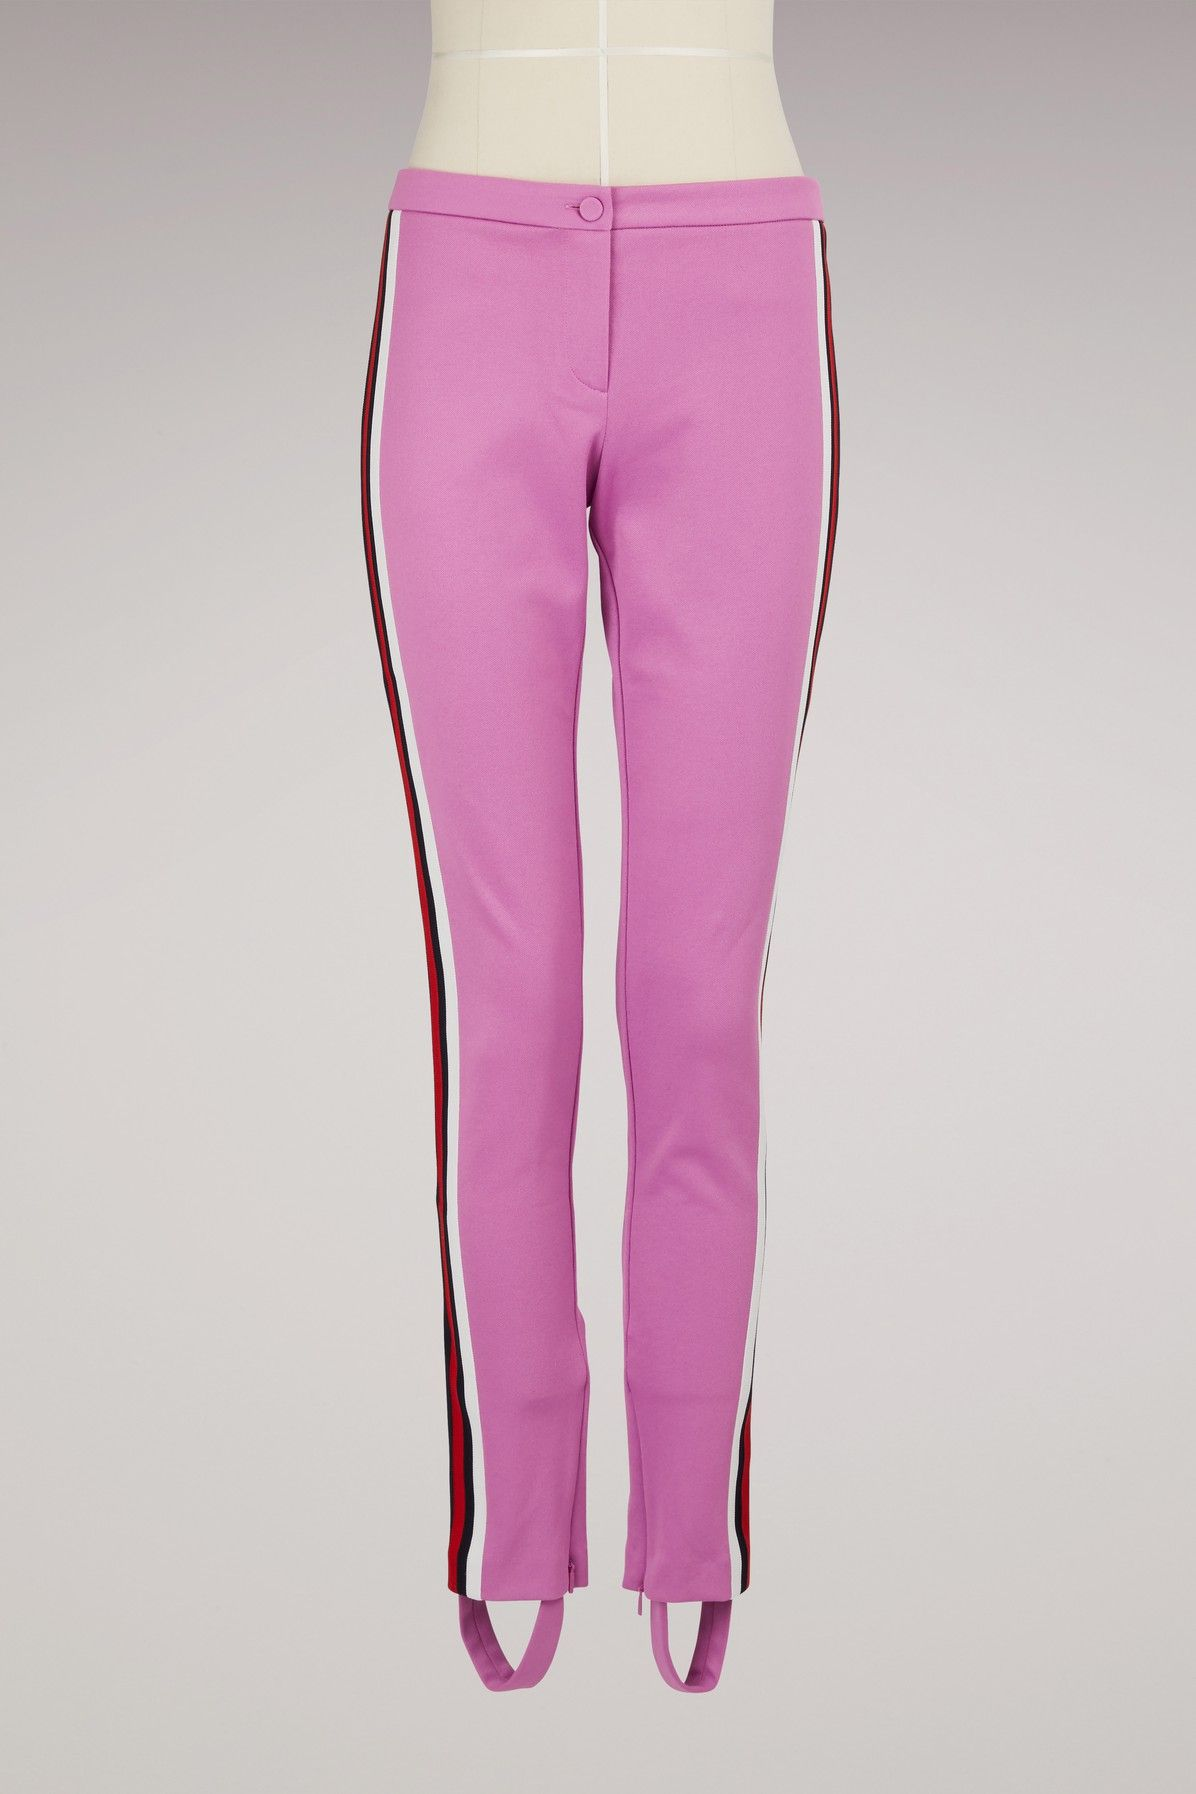 a922df73159 GUCCI Jersey stirrup legging with Web.  gucci  cloth